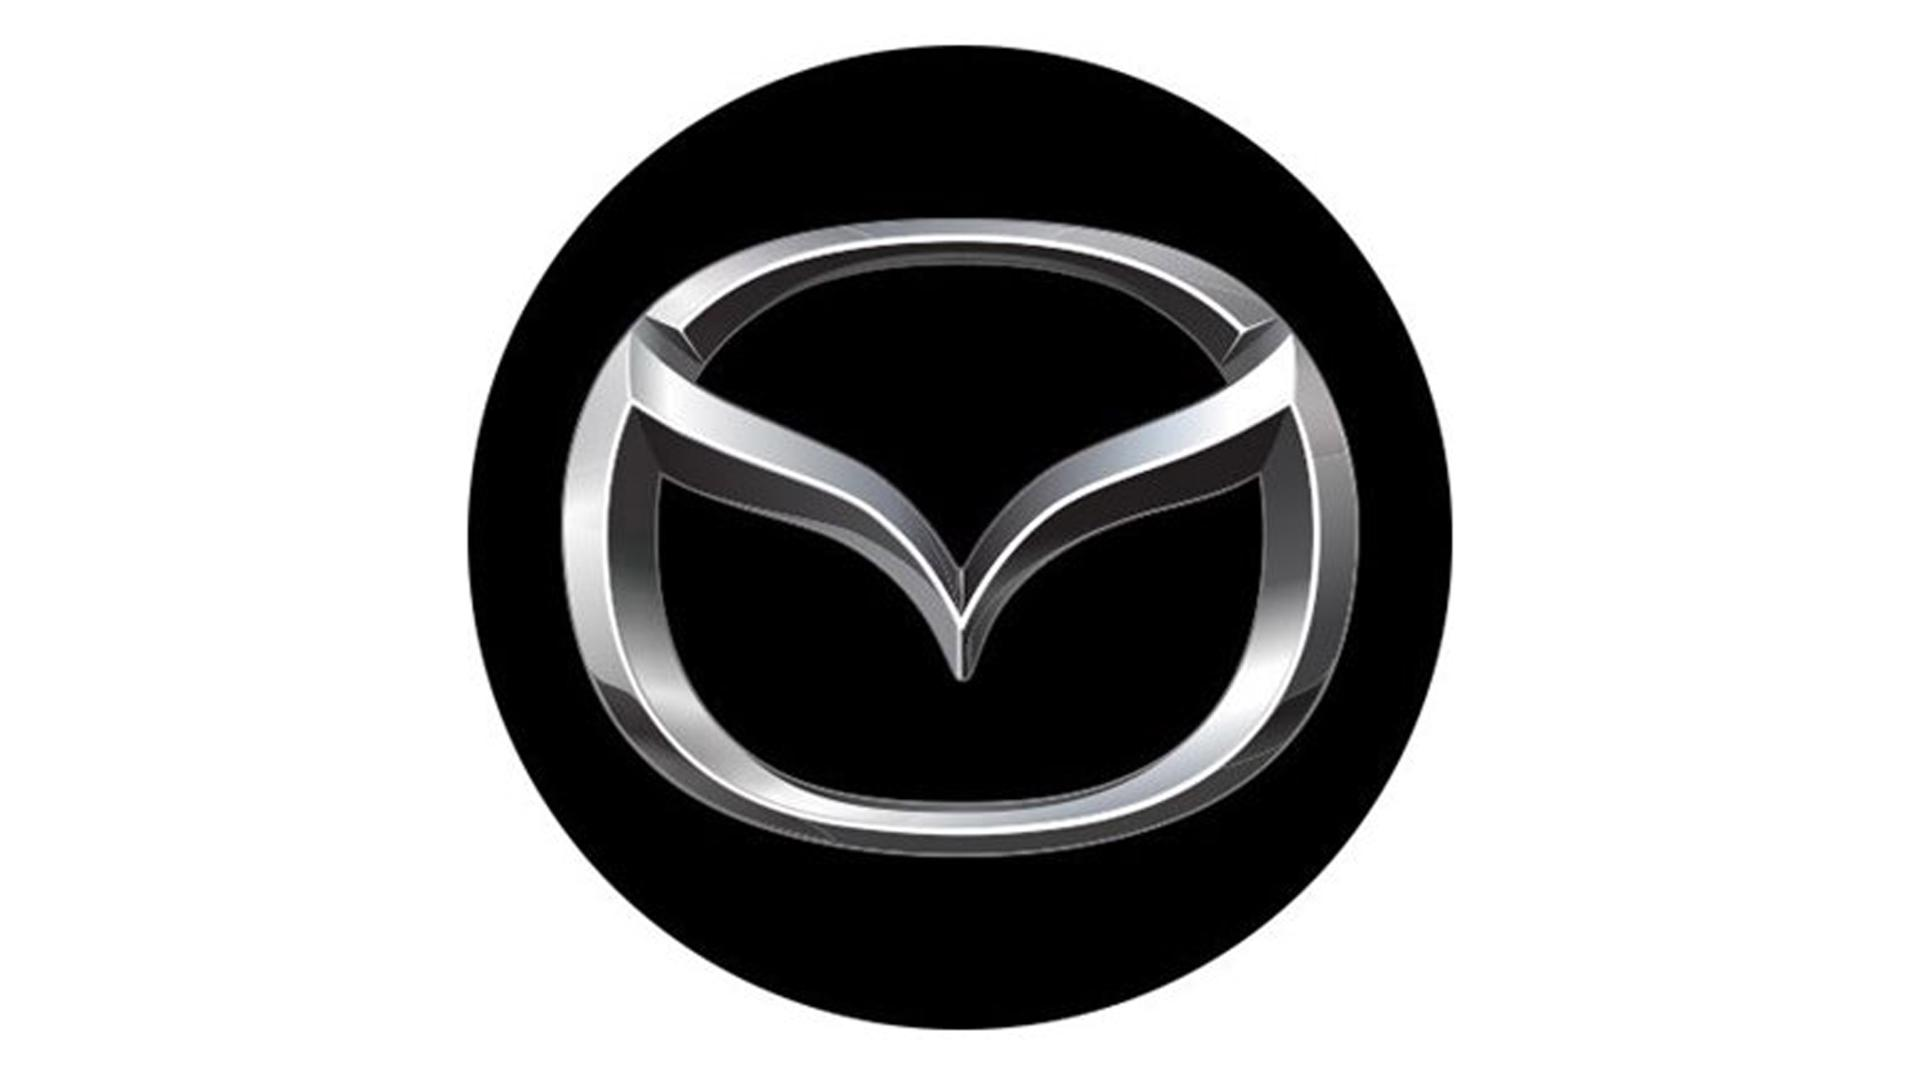 4CARS 3D CAR LOGO MAZDA